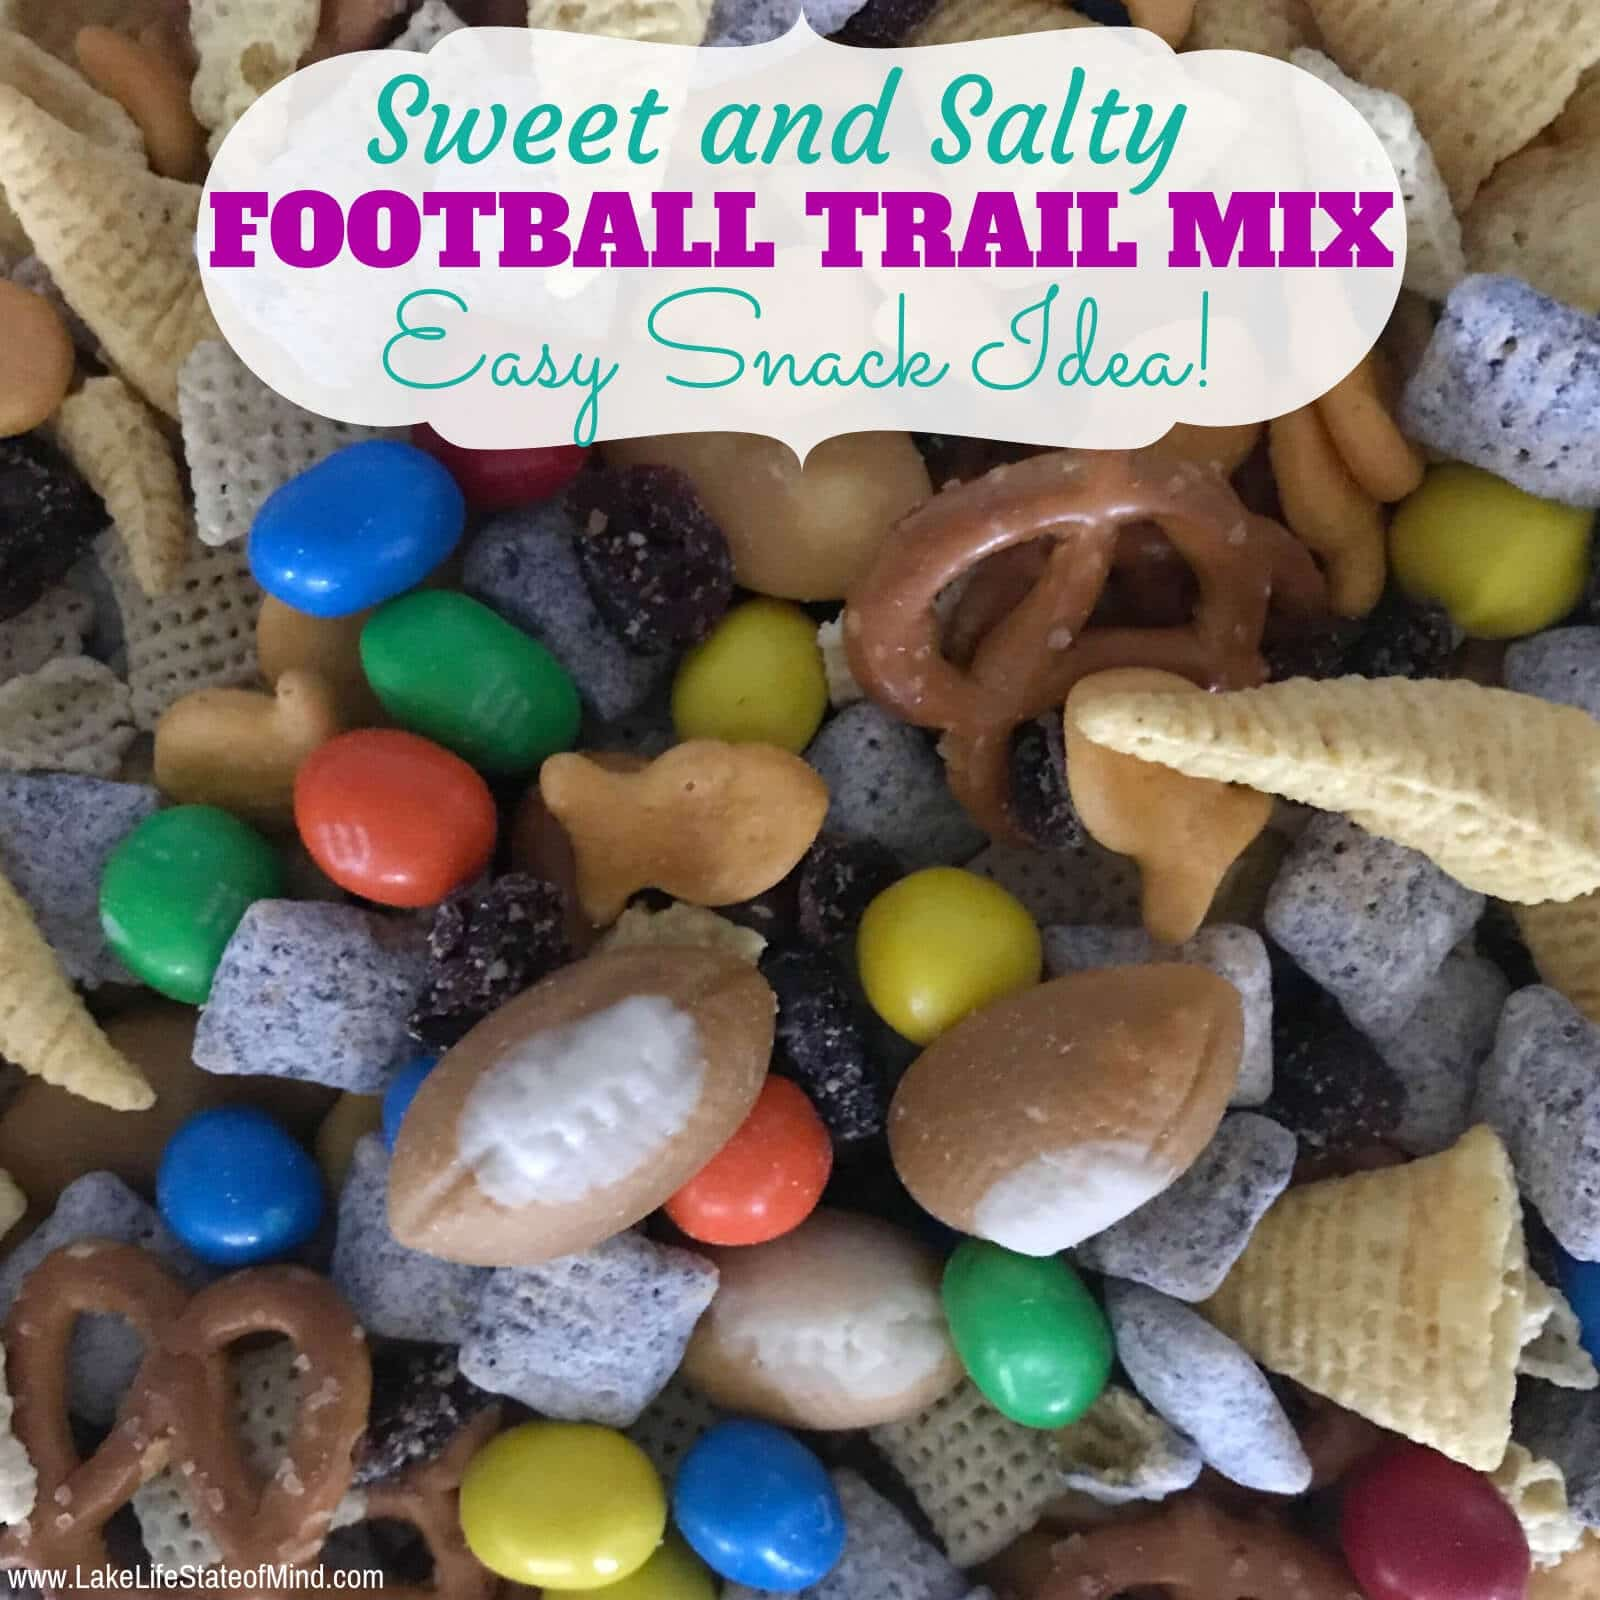 Easy Football Trail Mix